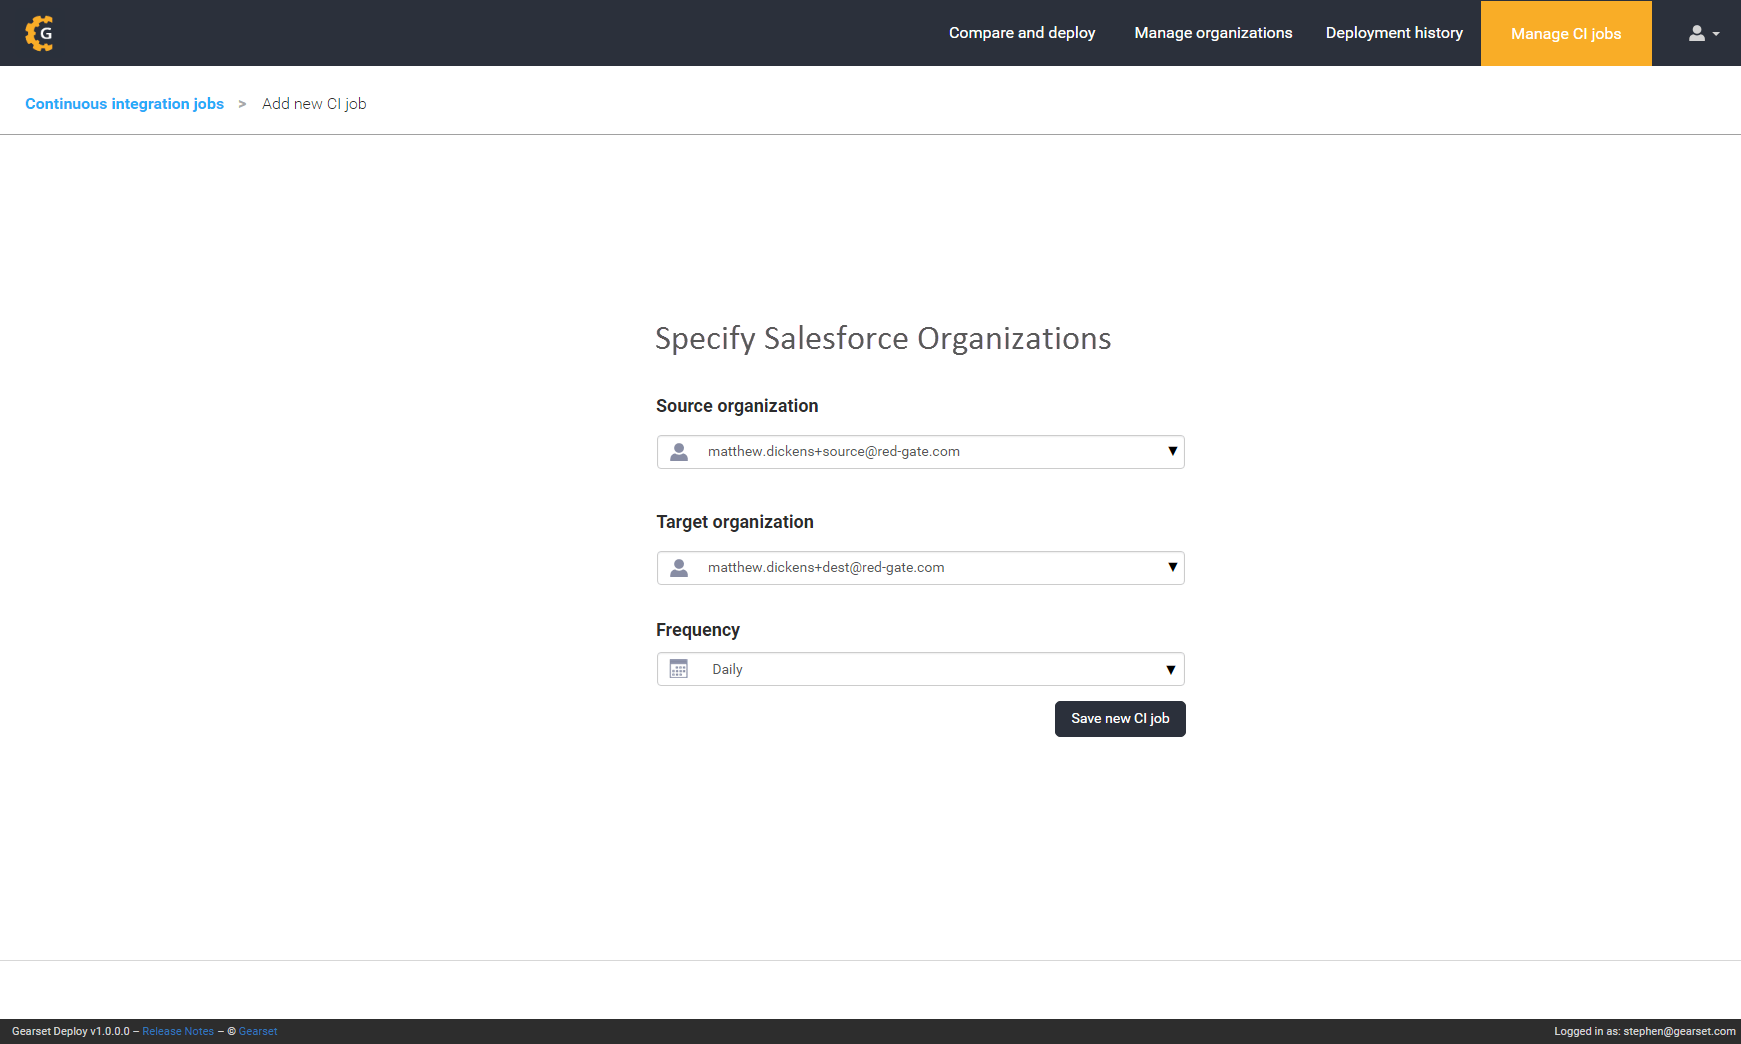 Specify the source and target Salesforce organization and CI job frequency